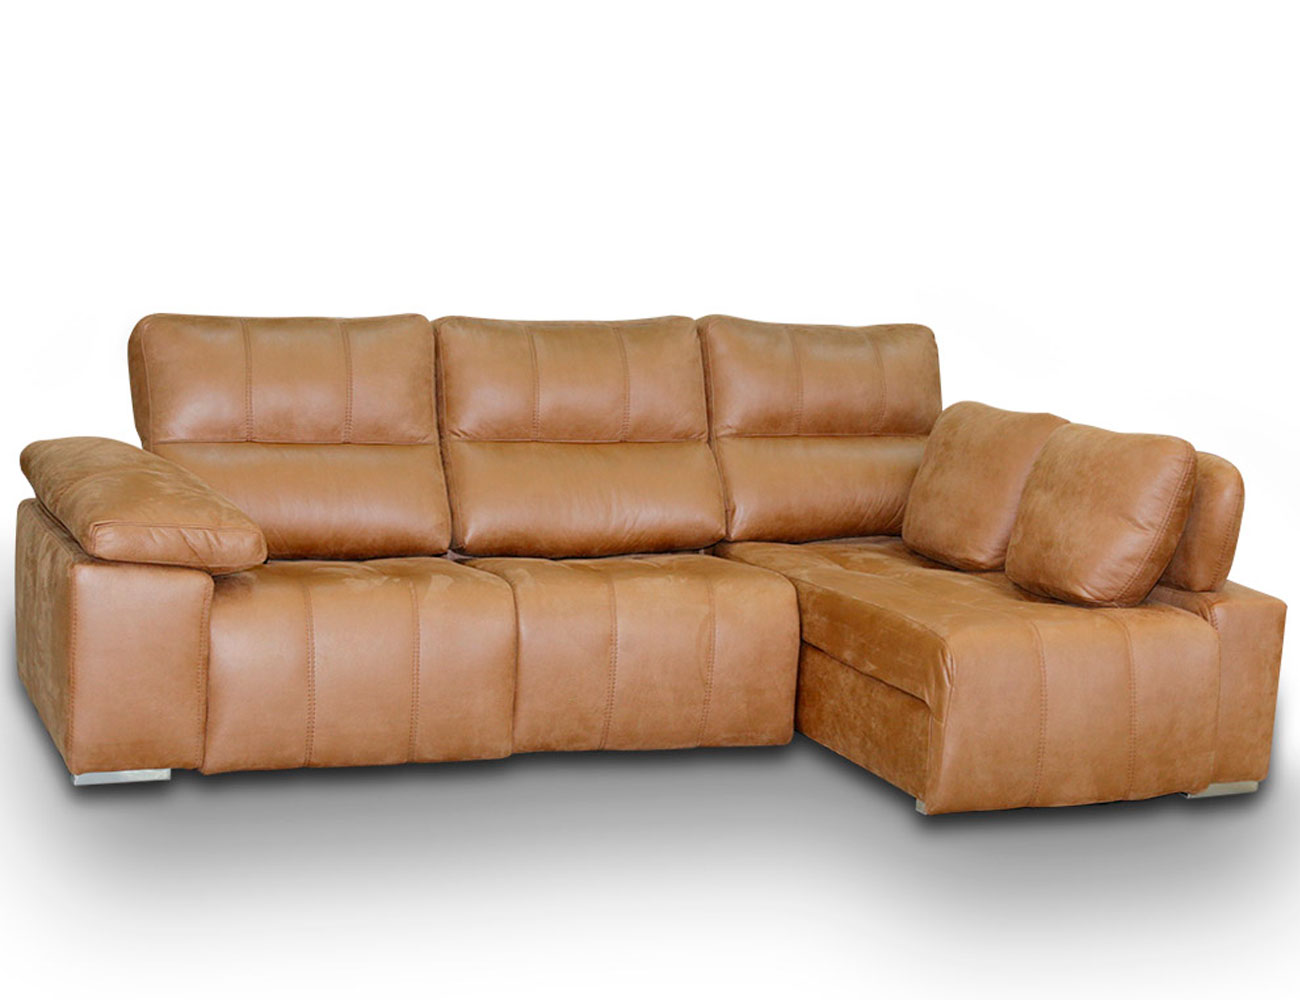 Sofa chaiselongue relax 2 motores anti manchas34